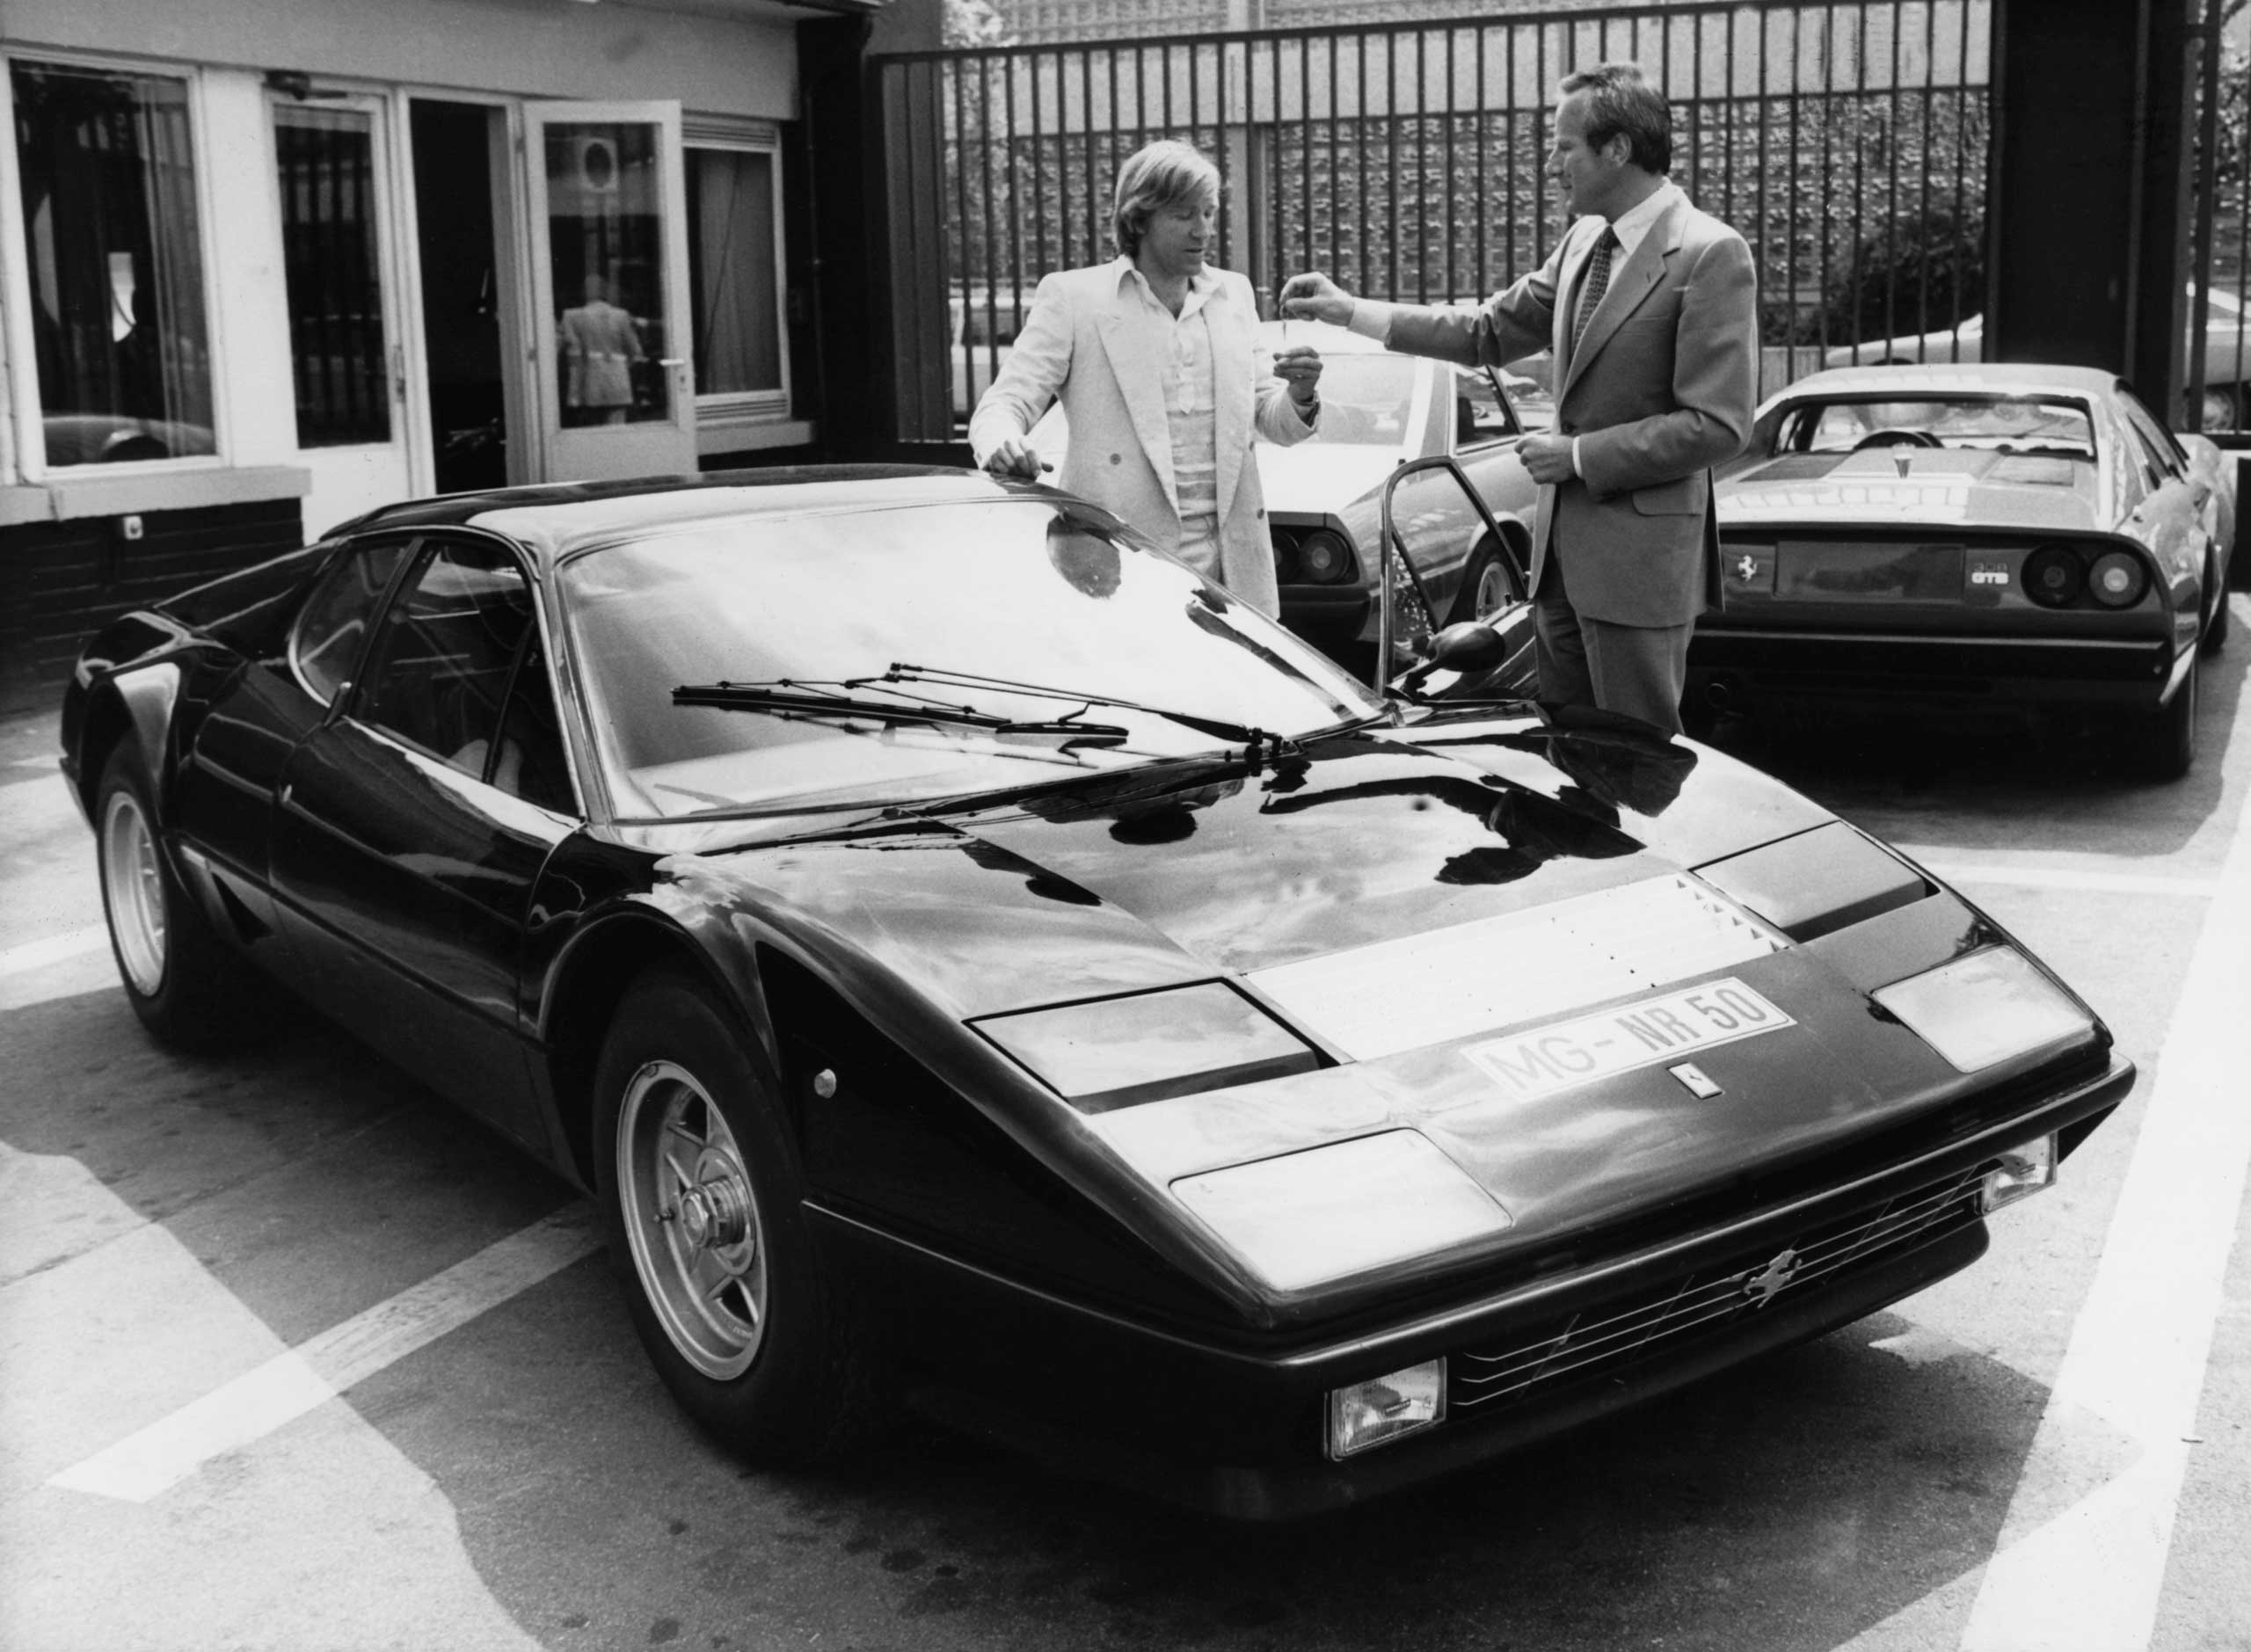 1976: The 512 Berlinetta Boxer was a mid-engined road car that Enzo Ferrari initially worried would be too difficult for his customers to handle.